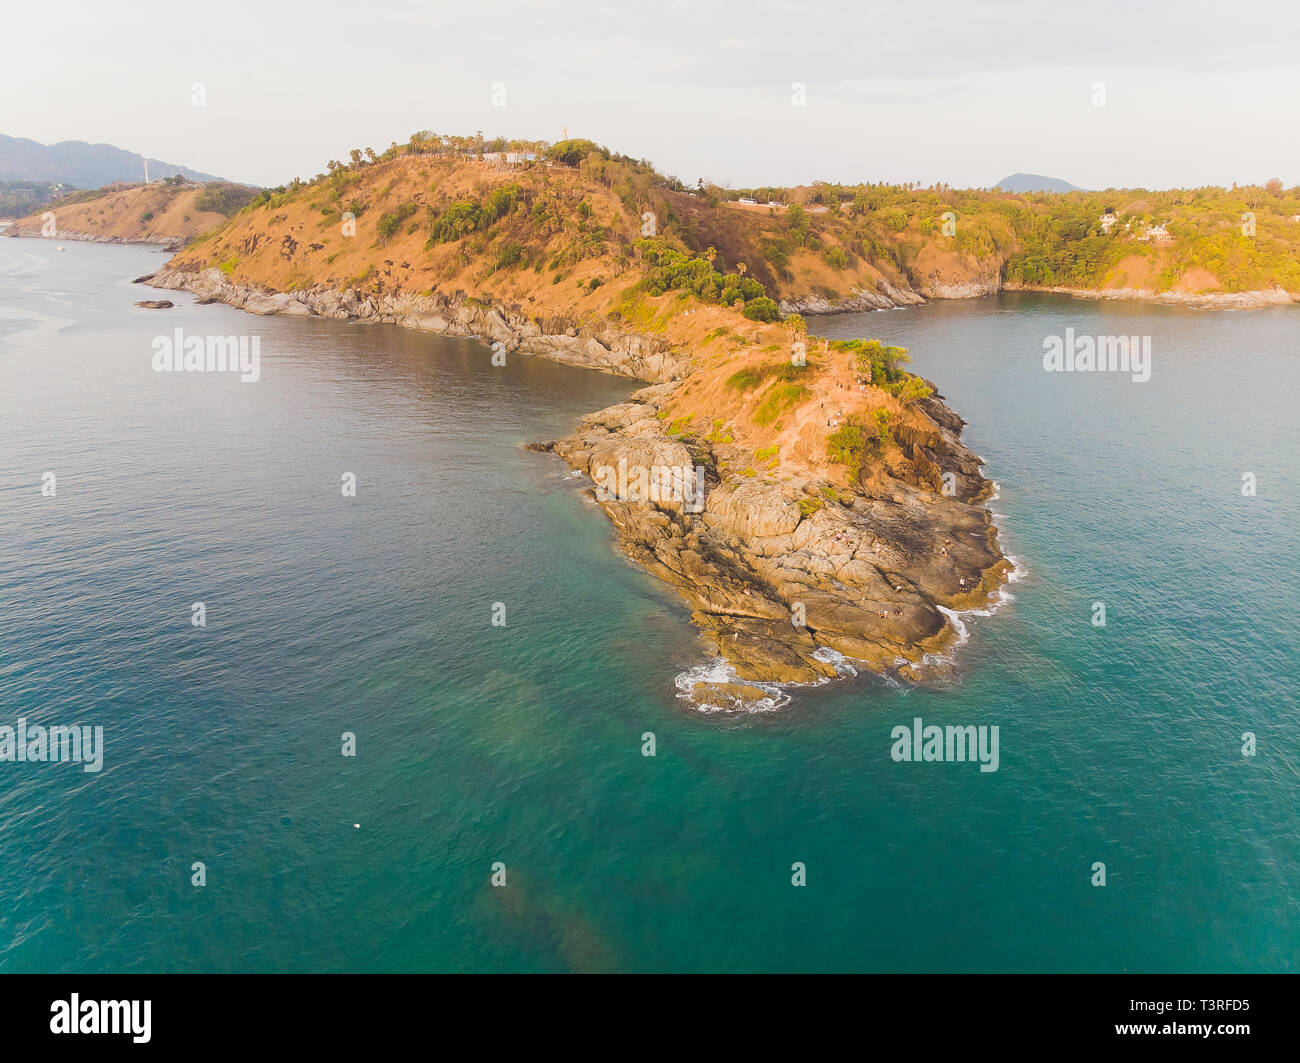 Phomthep or Promthep cave icon of Phuket, Thailand. Aerial view from drone camera of Phromthep cave view point at Phuket. - Stock Image